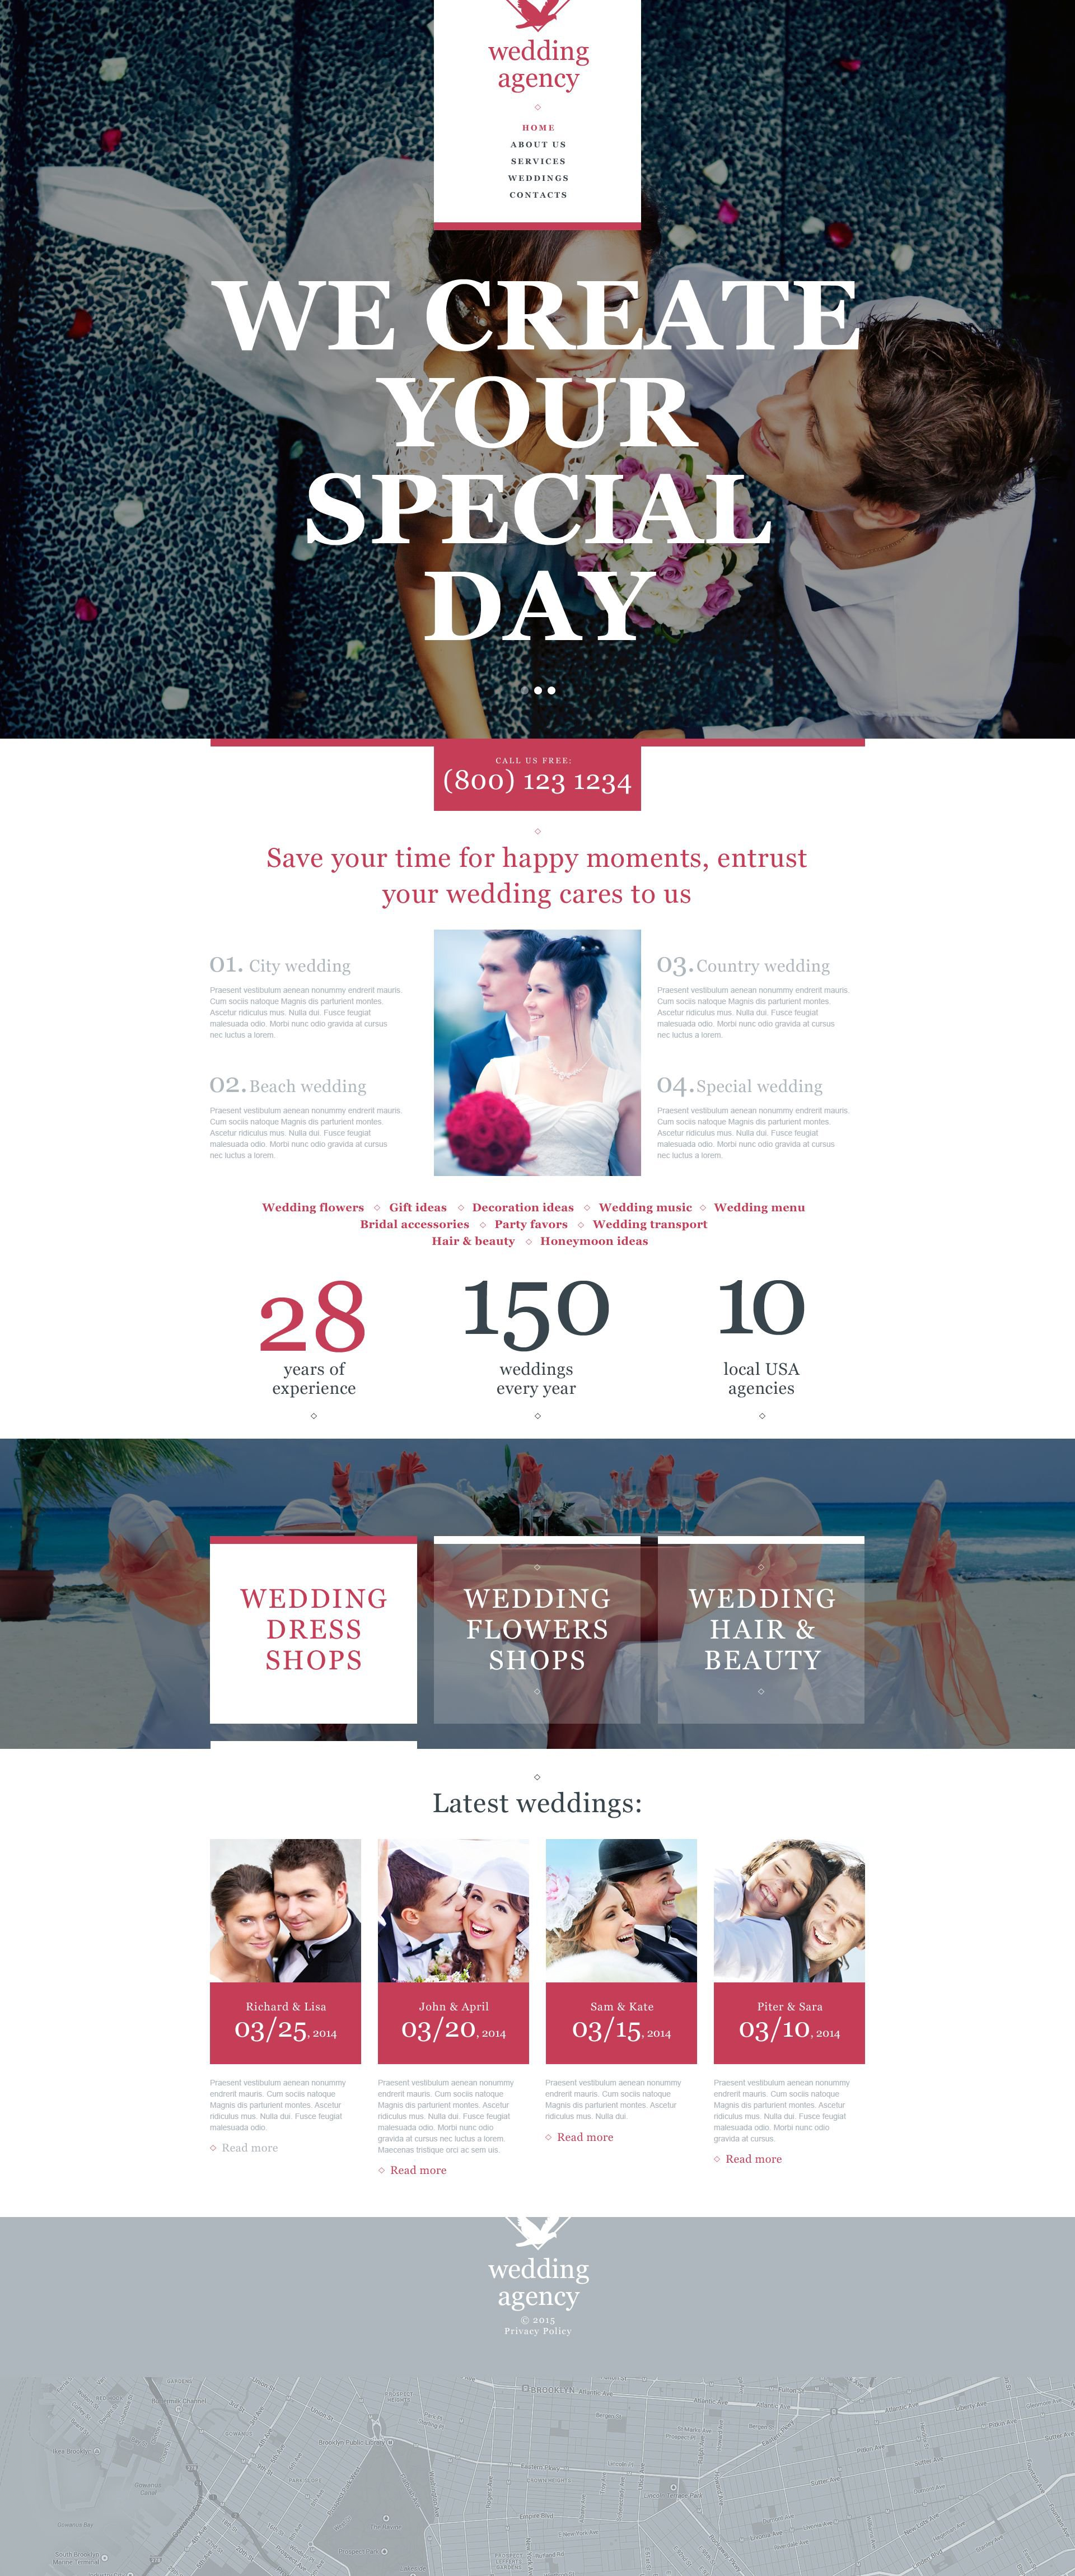 The Wedding Agency Online Store Muse Templates Design 53396, one of the best Muse templates of its kind (wedding, most popular), also known as wedding agency online store Muse template, reception Muse template, bridal Muse template, ceremony Muse template, gifts Muse template, jewel Muse template, specials Muse template, offers Muse template, rings Muse template, flowers Muse template, bouquet designers Muse template, candles Muse template, glasses Muse template, decoration Muse template, style Muse template, accessories Muse template, crown Muse template, tiara Muse template, gown Muse template, veil Muse template, dress Muse template, collection Muse template, couple Muse template, fiancee Muse template, marriage Muse template, bridegroom Muse template, husband Muse template, wife Muse template, match and related with wedding agency online store, reception, bridal, ceremony, gifts, jewel, specials, offers, rings, flowers, bouquet designers, candles, glasses, decoration, style, accessories, crown, tiara, gown, veil, dress, collection, couple, fiancee, marriage, bridegroom, husband, wife, match, etc.